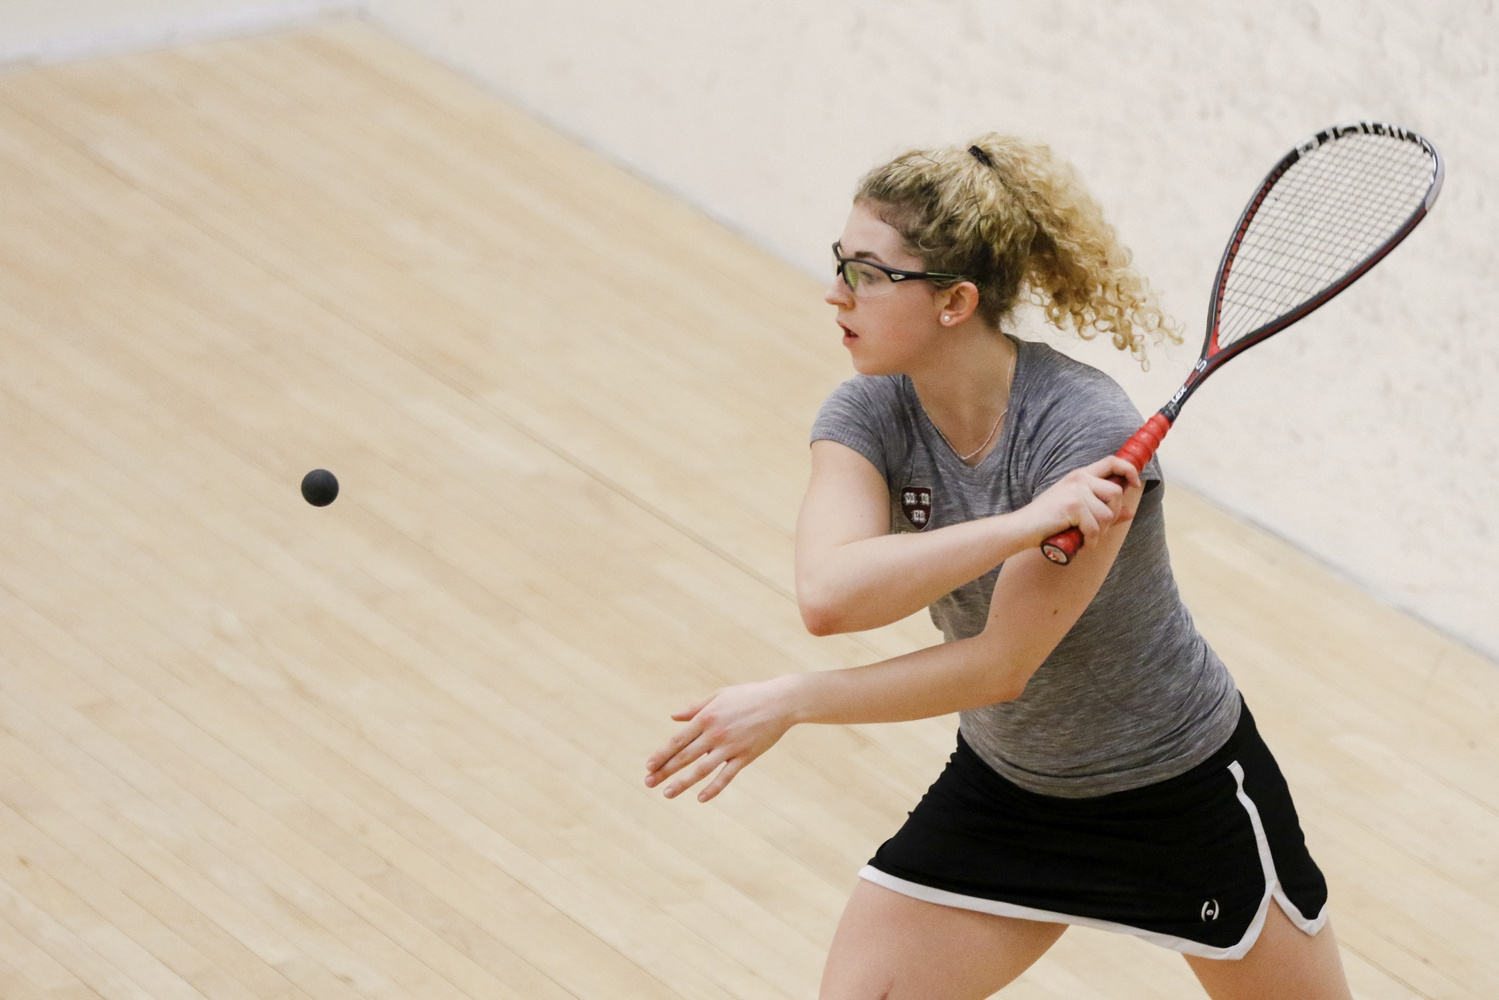 The women's Squash team has finished the past 4 seasons as national champions.